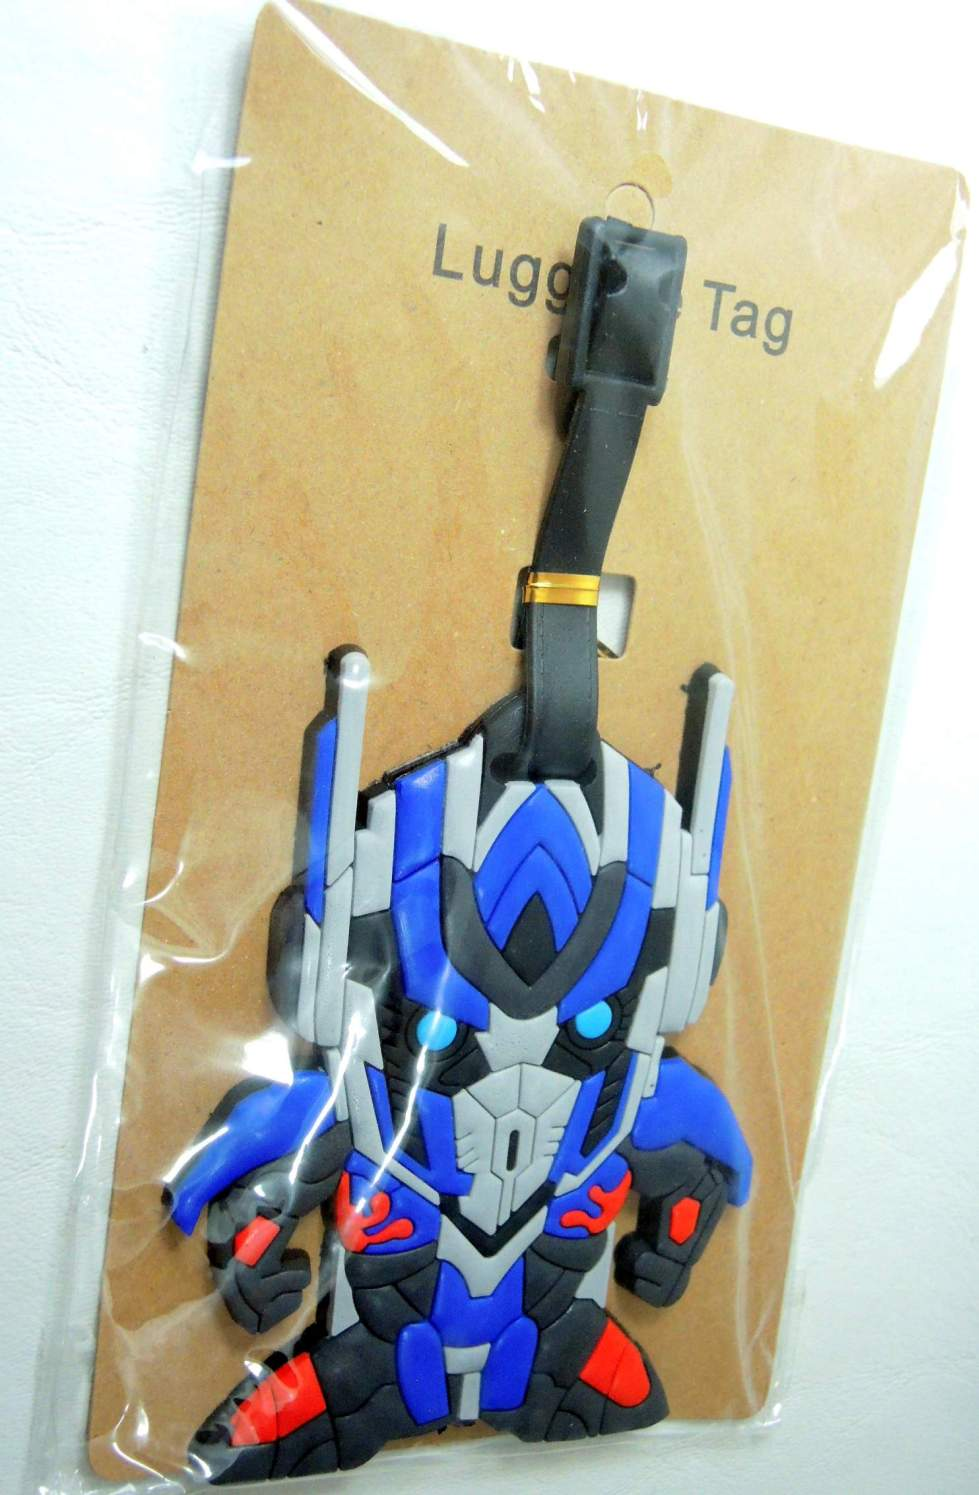 Transformers Optimus Prime Soft Plastic Luggage Tag - 8419-8414CCCVVY